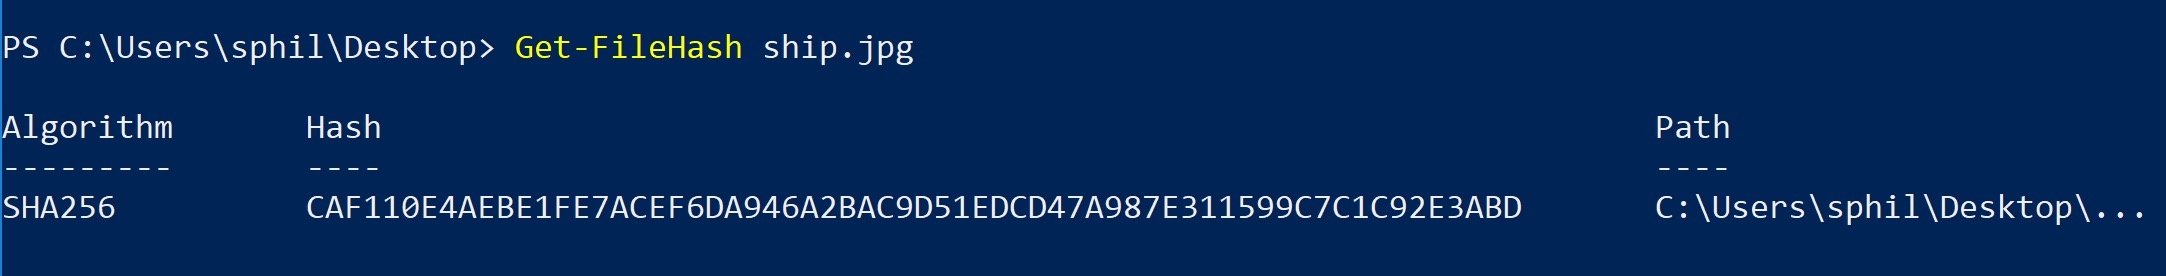 image of use powershell to create hash